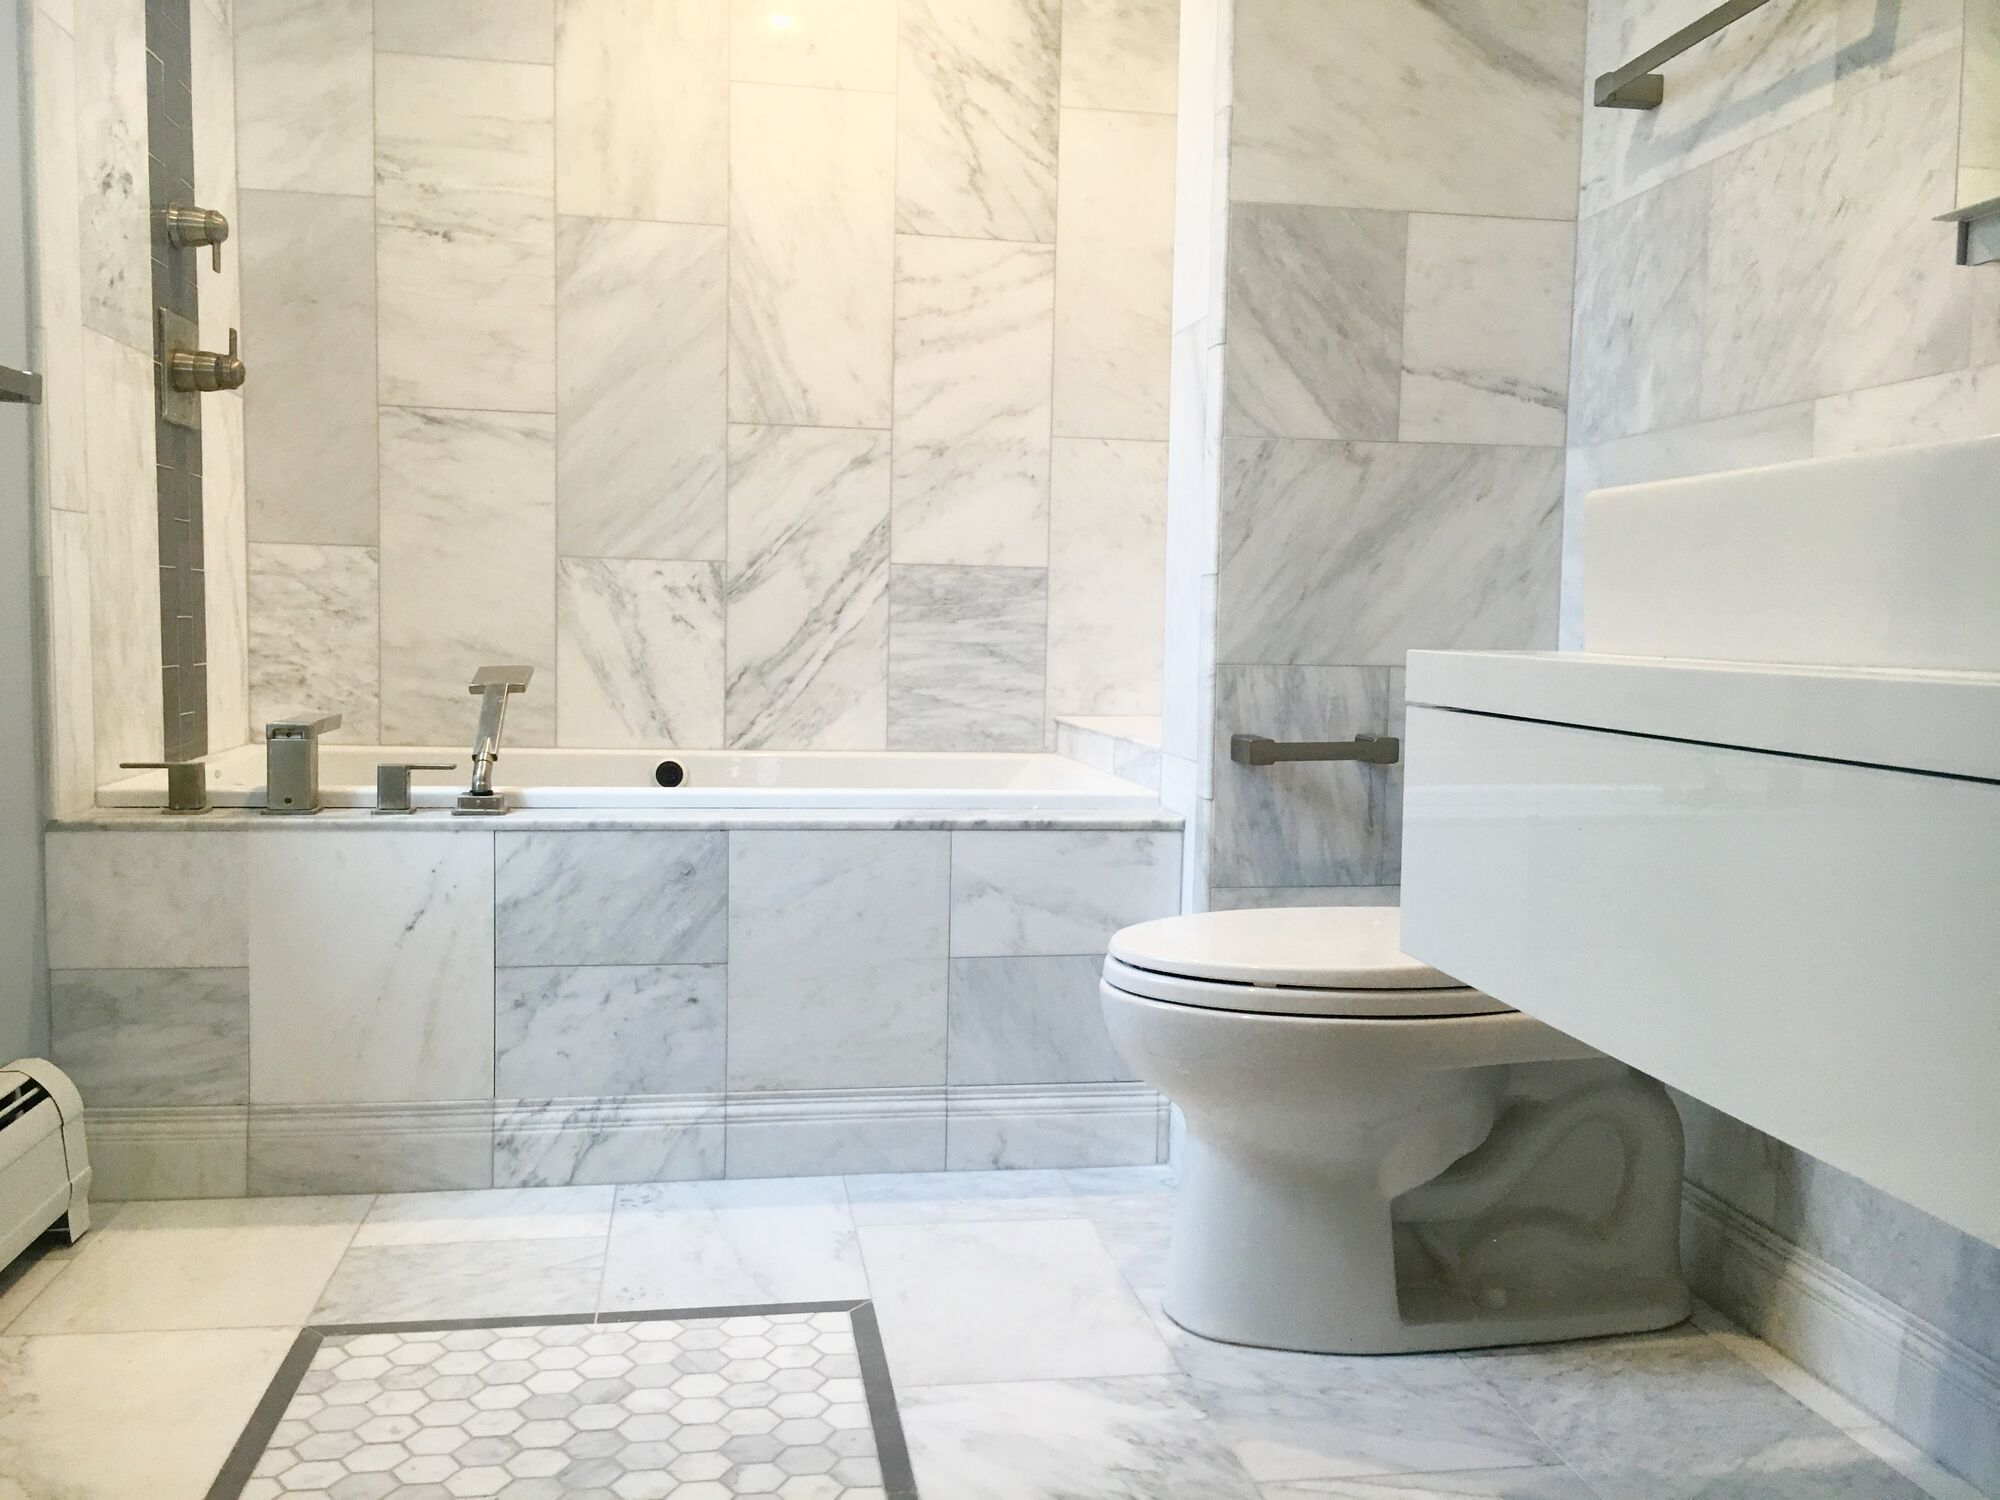 Marble Master Bath with Drop In Tub, Deck Mounted Tub Faucet, Floating Vanity in Fort Lee, Hudson County NJ